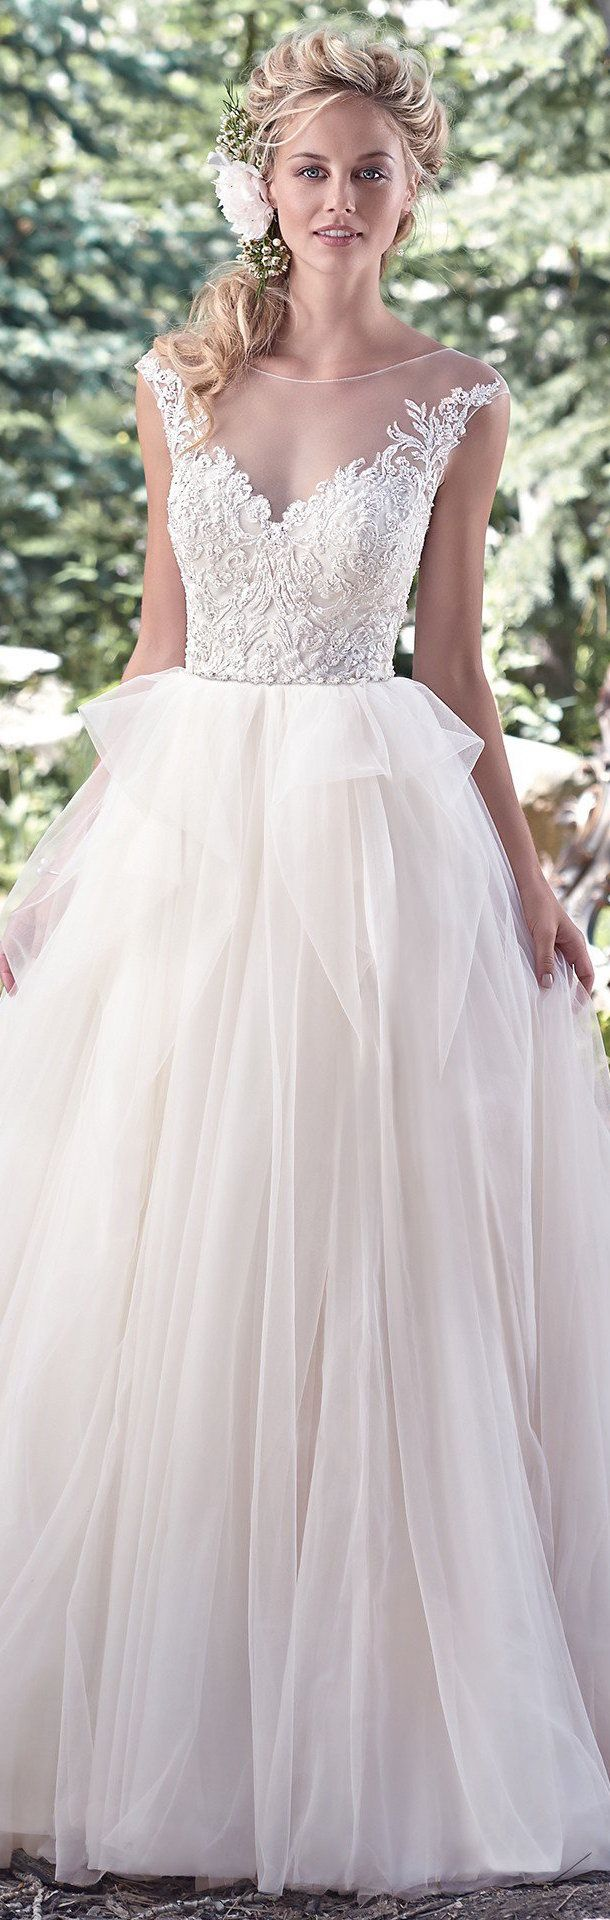 whimsical wedding dress 17 best ideas about whimsical wedding dresses on 1289